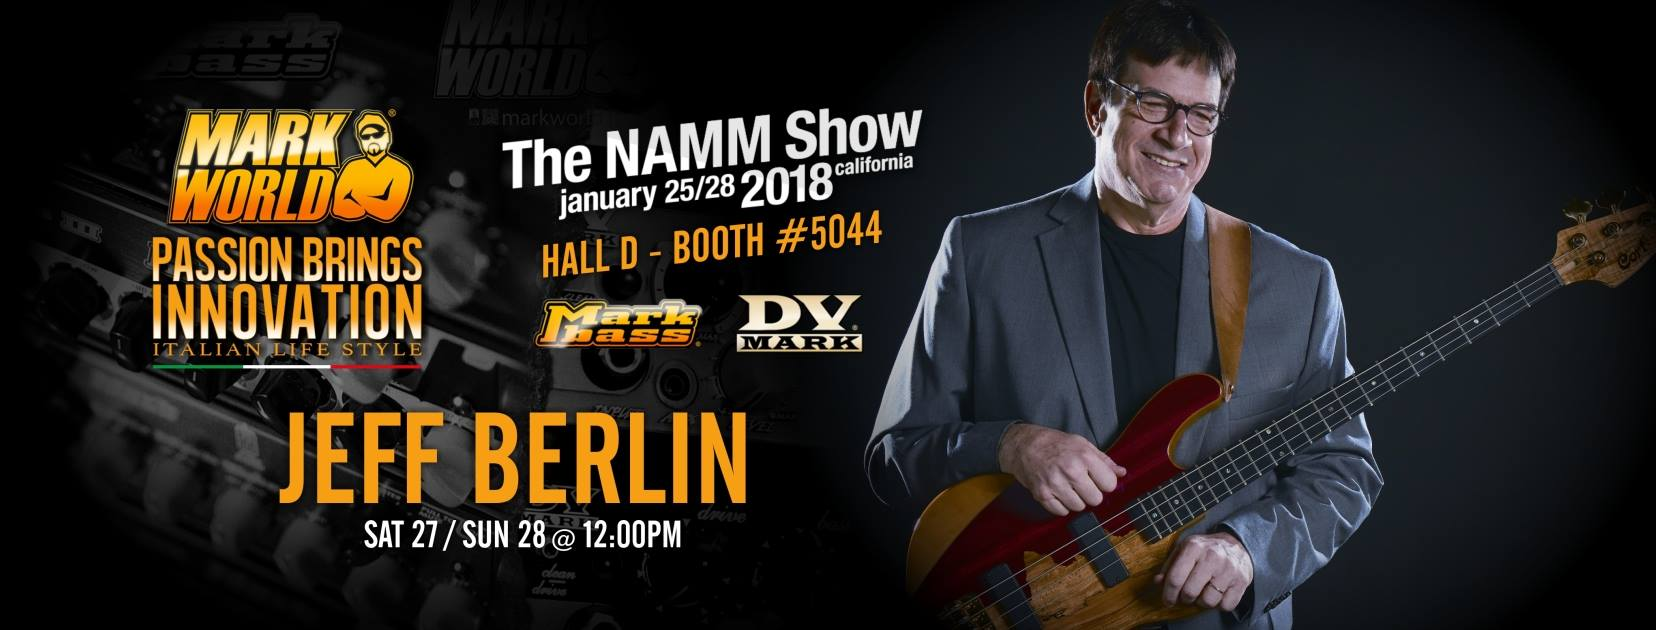 Jeff Berlin show Namm 2018